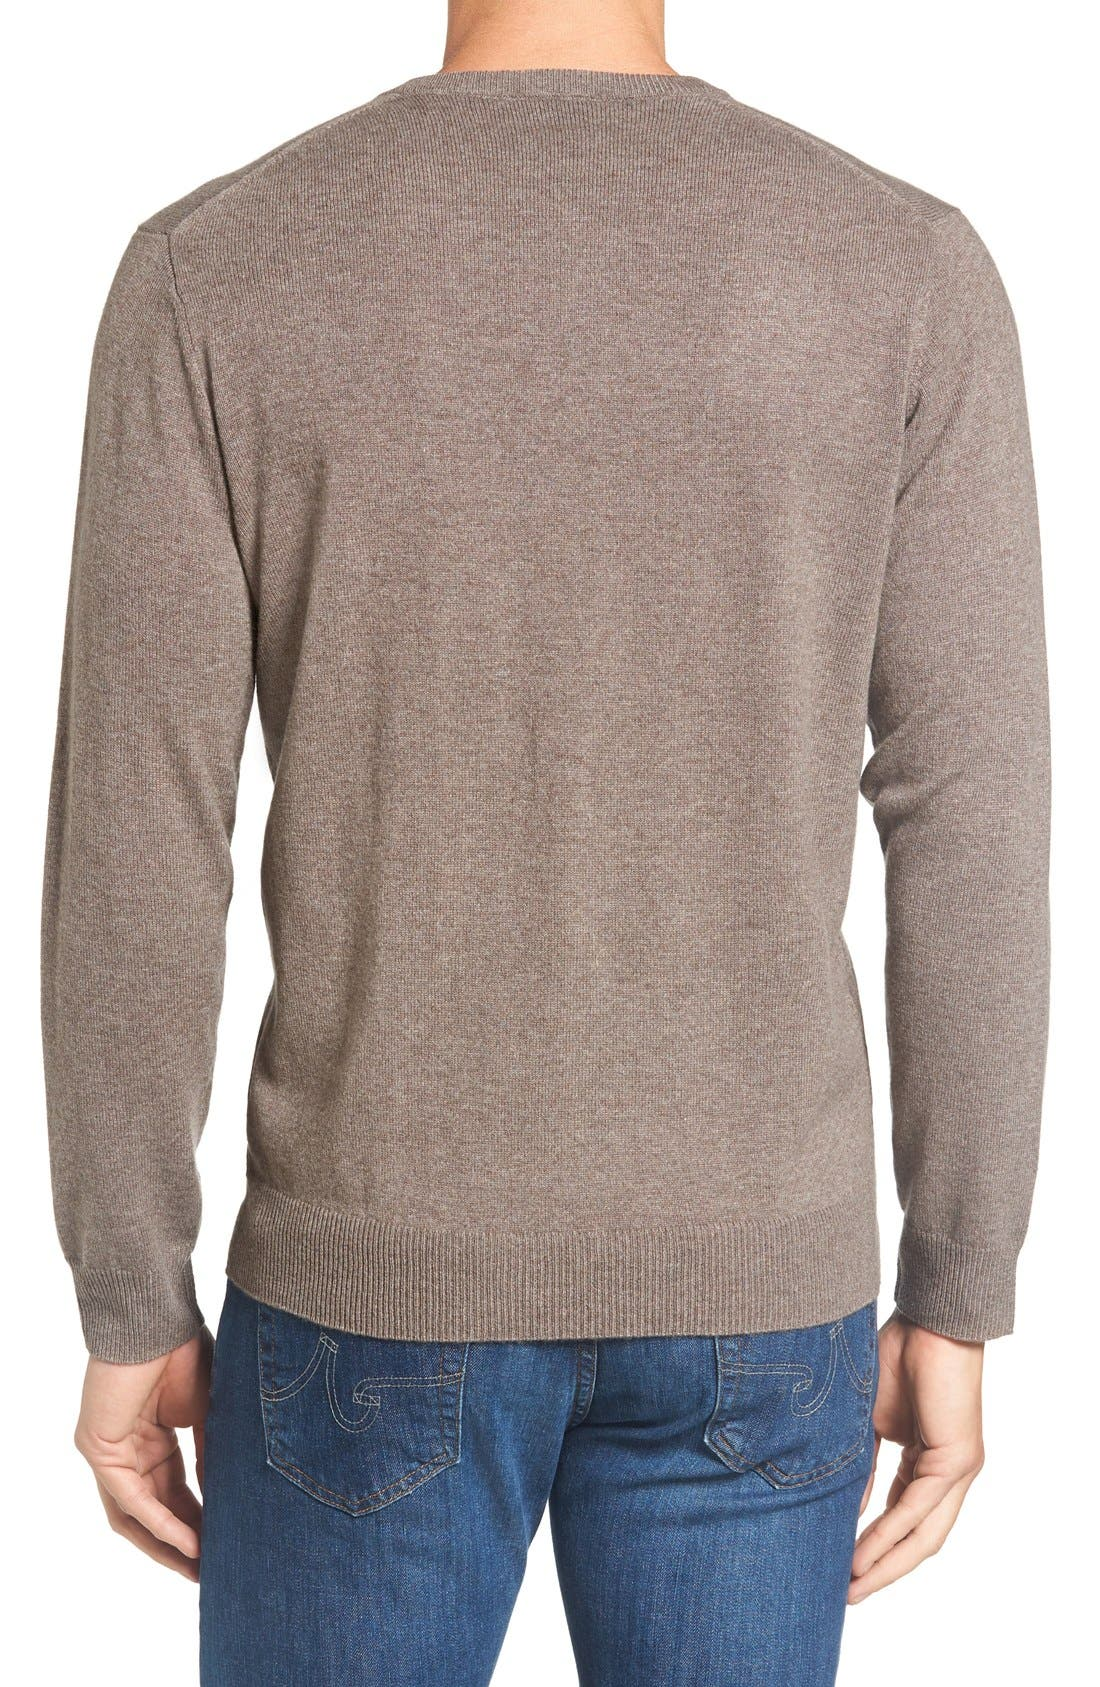 Alternate Image 2  - Rodd & Gunn 'Inchbonnie' Wool & Cashmere V-Neck Sweater